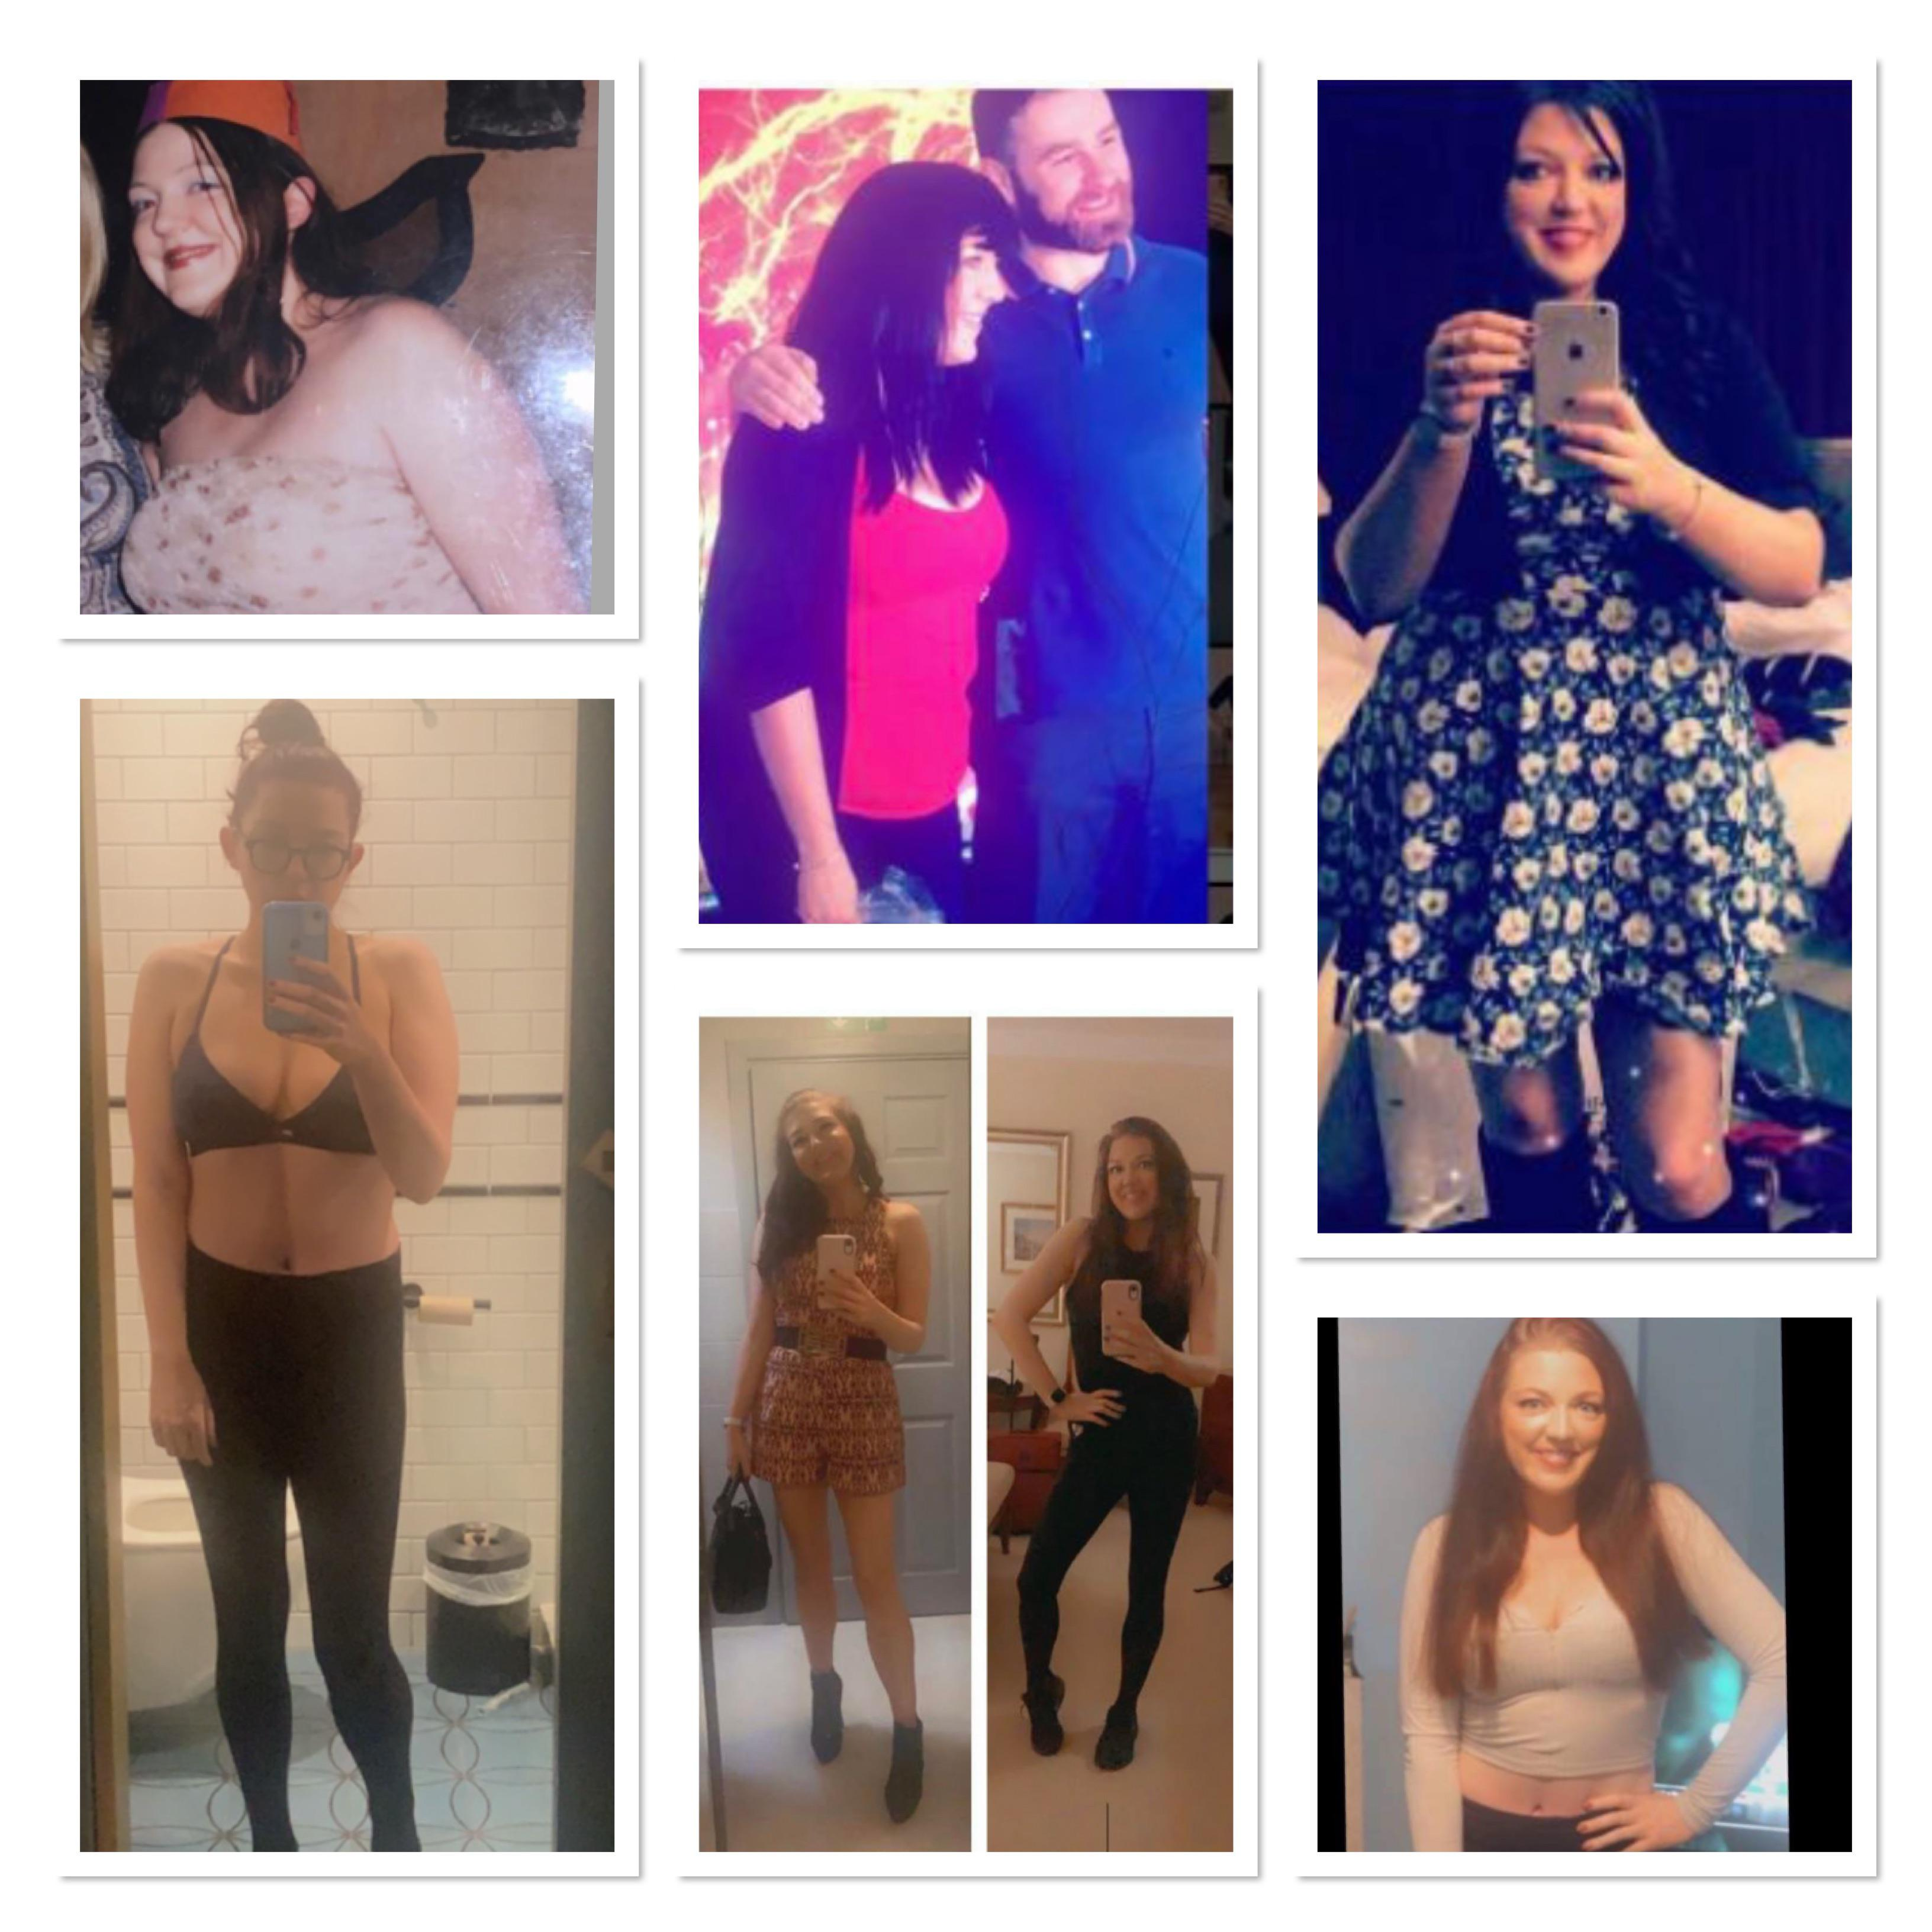 5'8 Female Before and After 72 lbs Fat Loss 210 lbs to 138 lbs